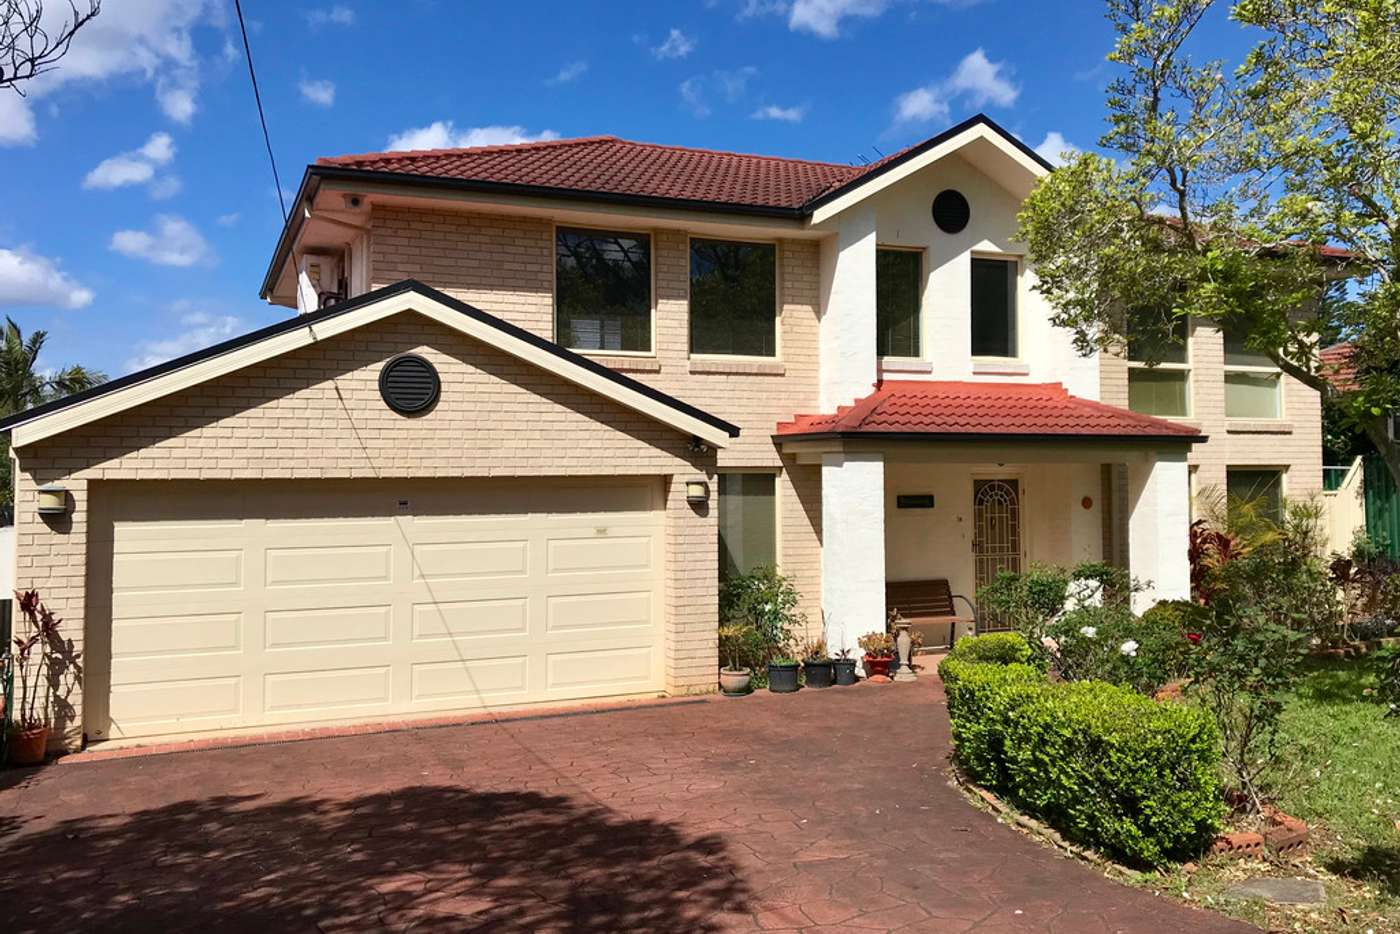 Main view of Homely house listing, 18 Charles Street, Baulkham Hills NSW 2153